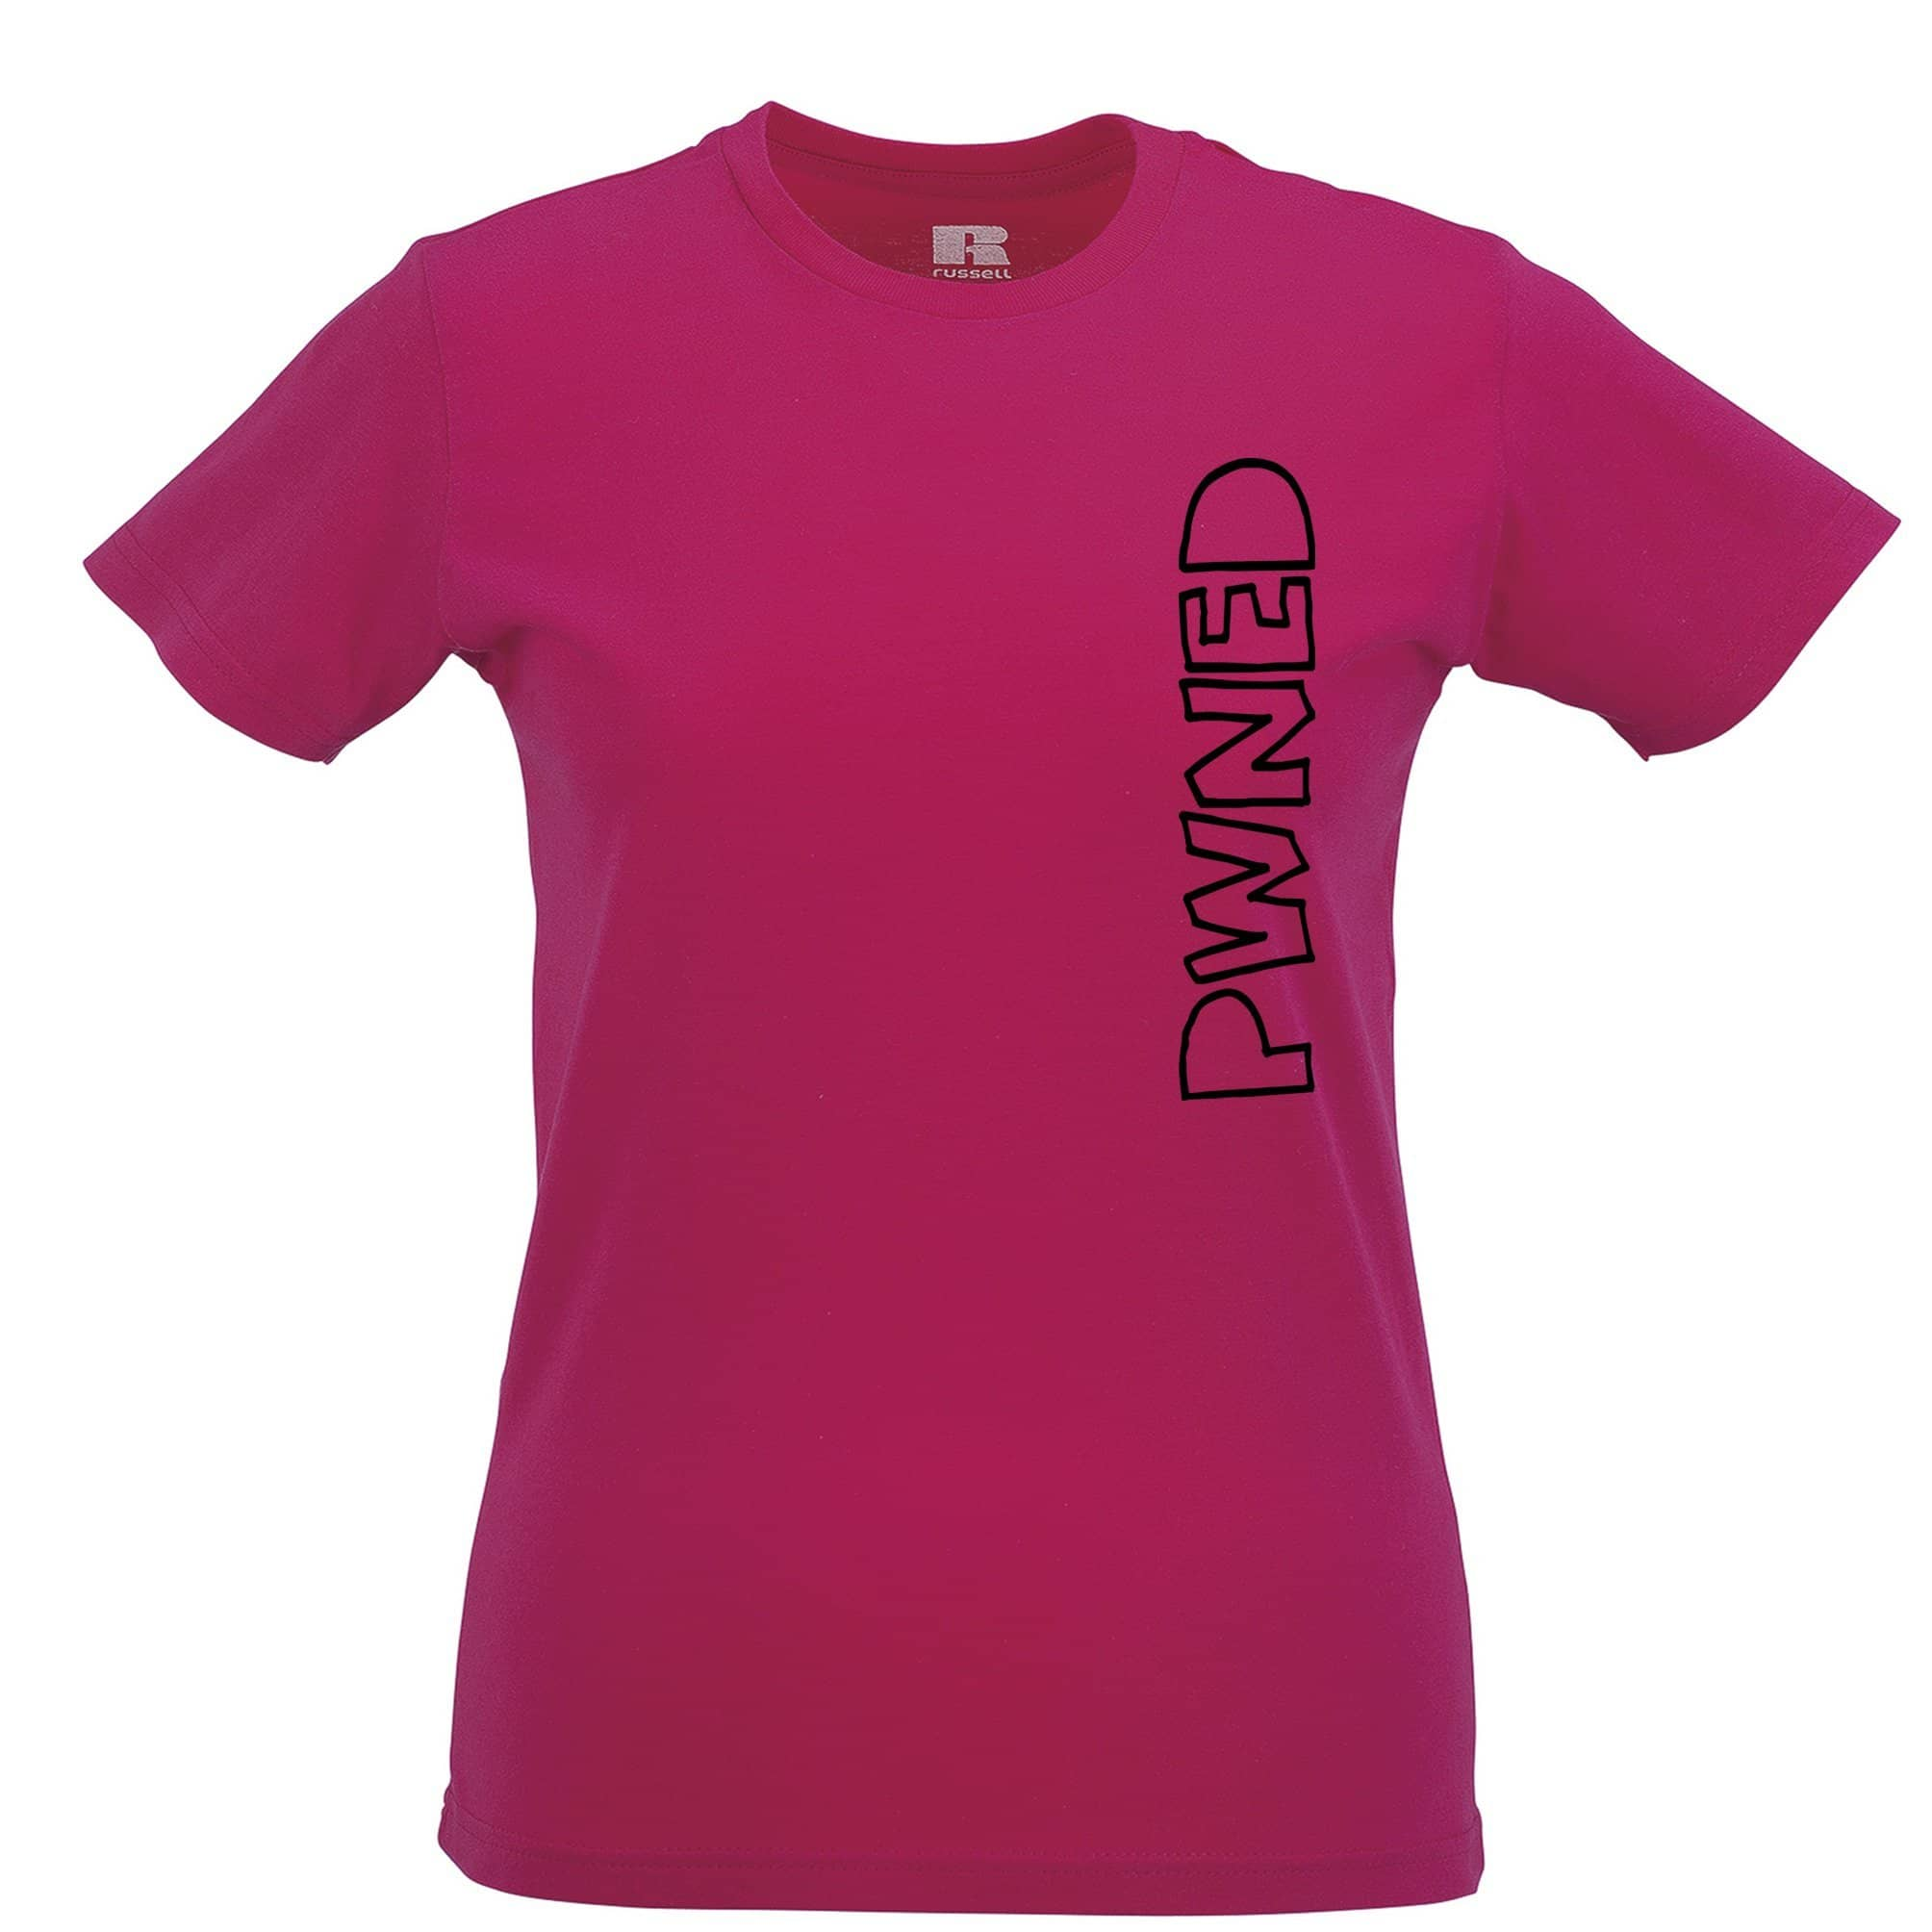 Novelty Gaming Womens TShirt PWNED Sideways Text Slogan